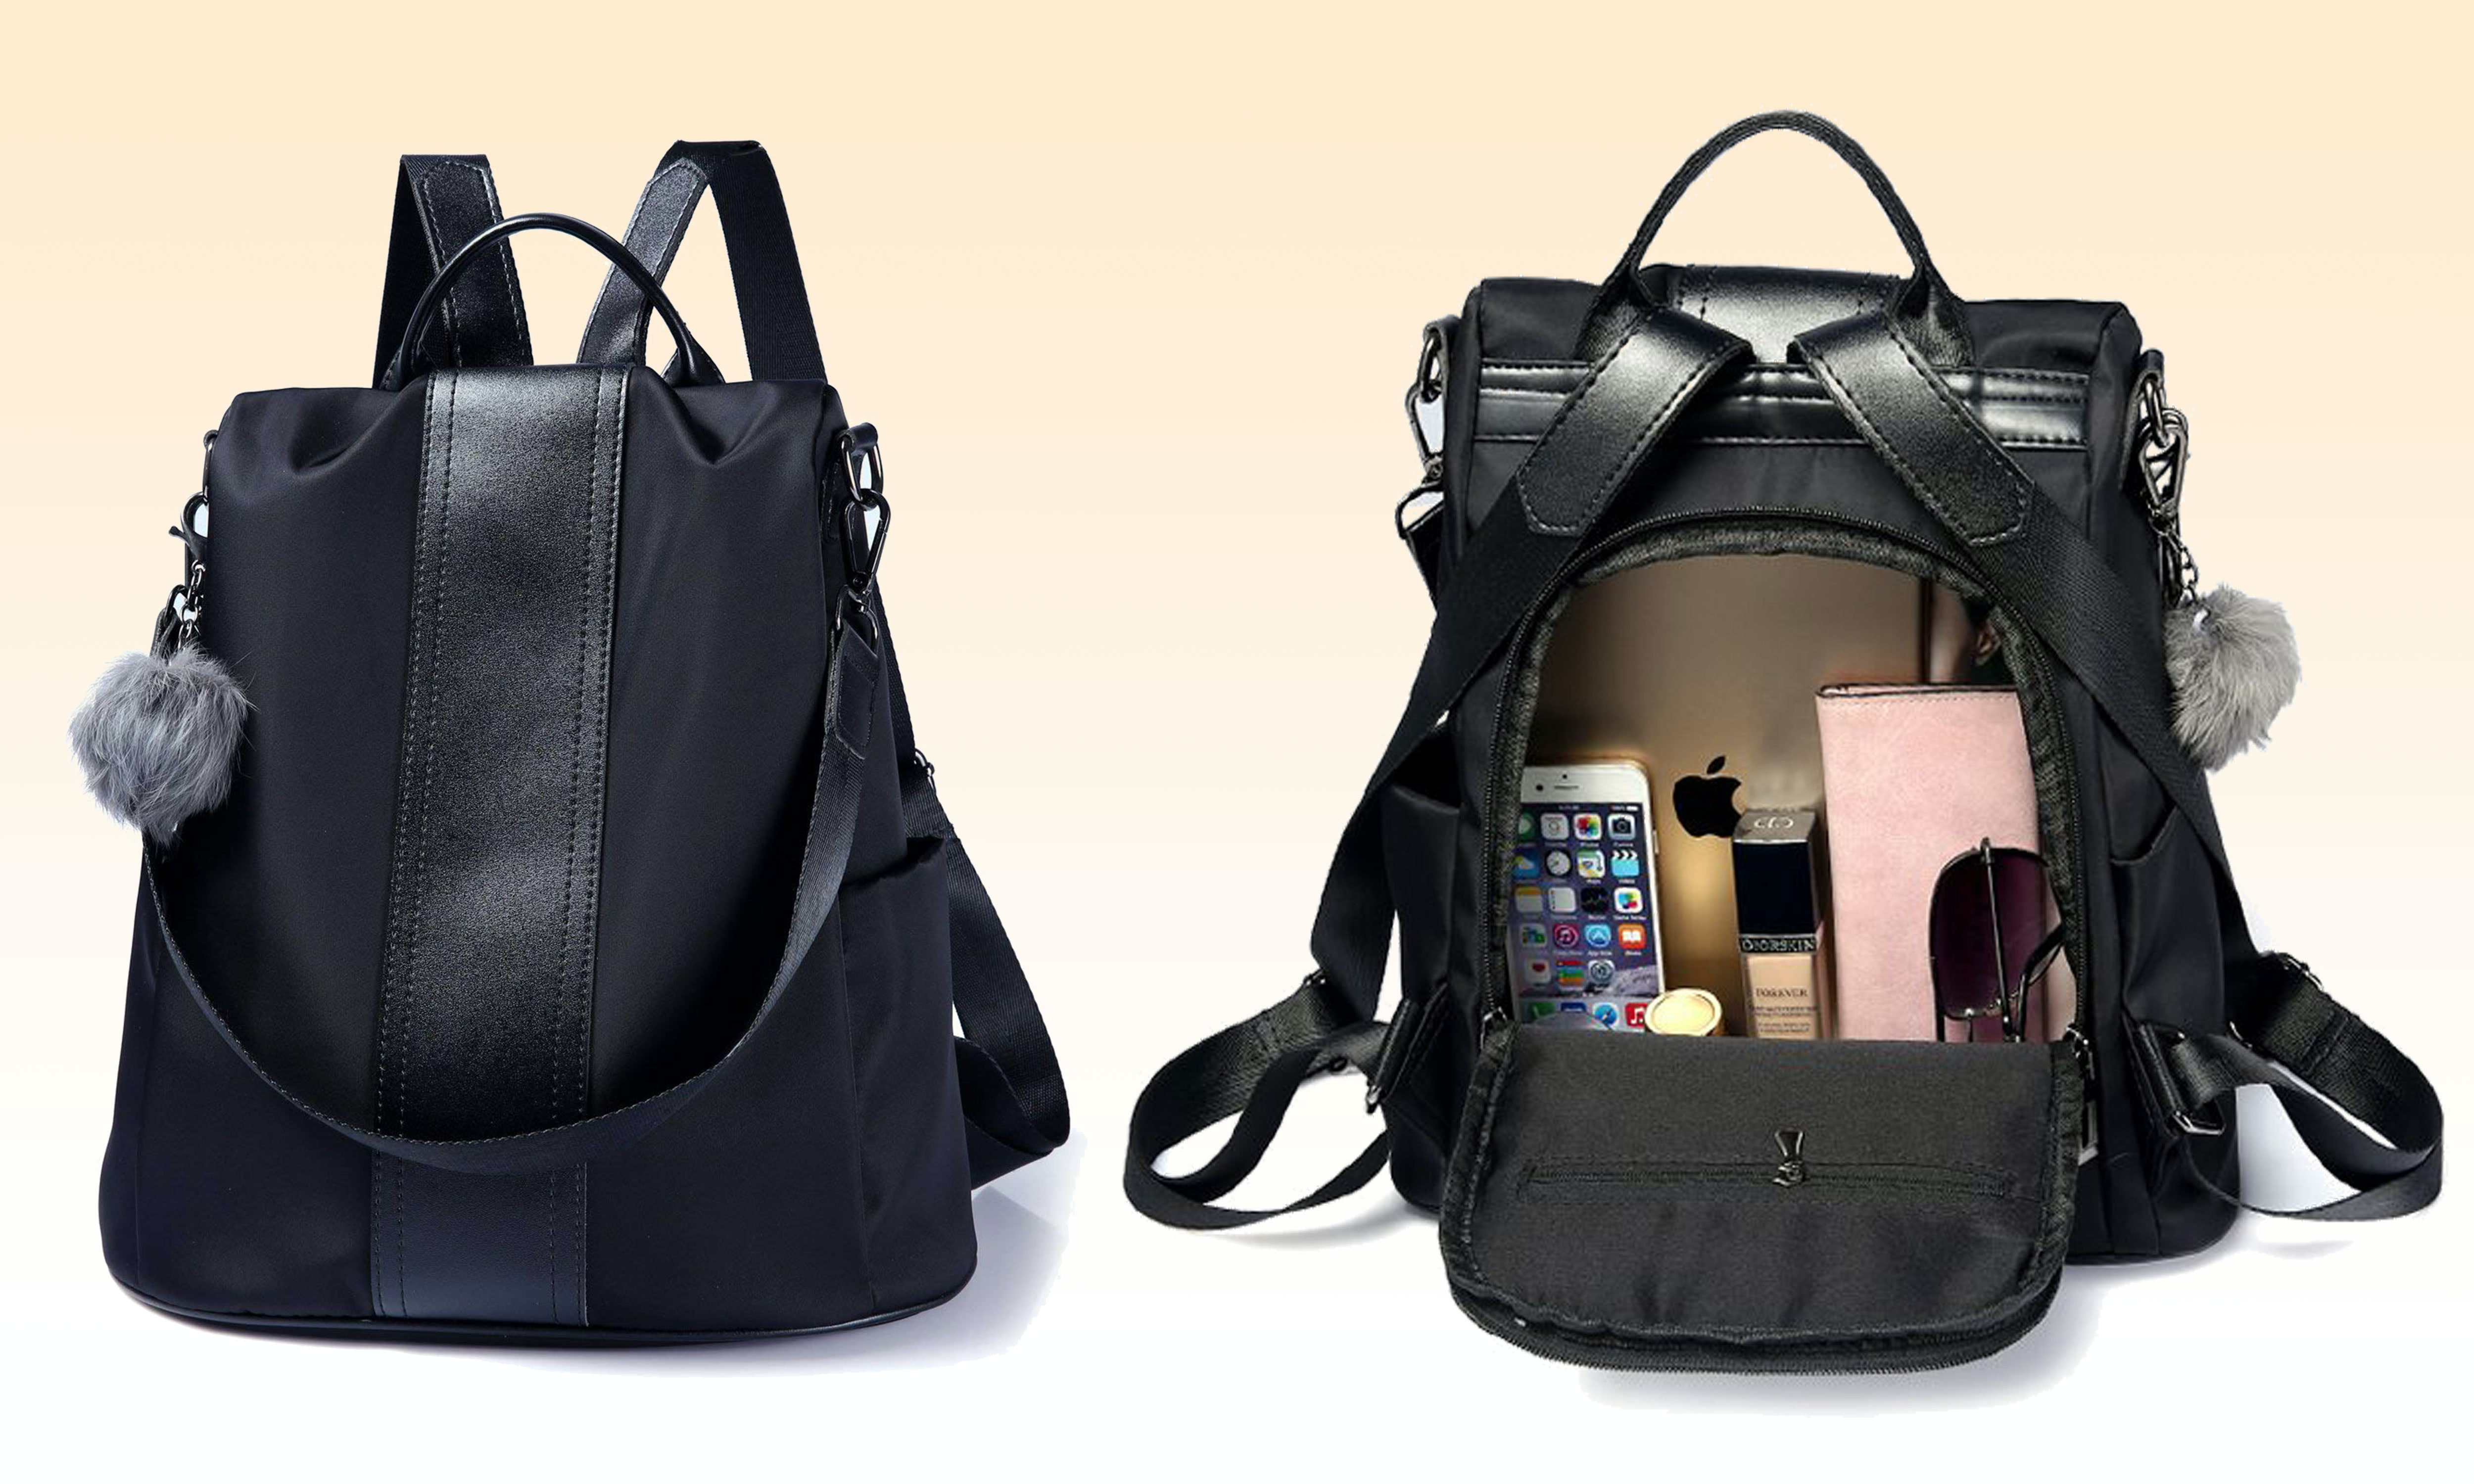 d38c658b37cf The 11 Most Fashionable Travel Backpacks